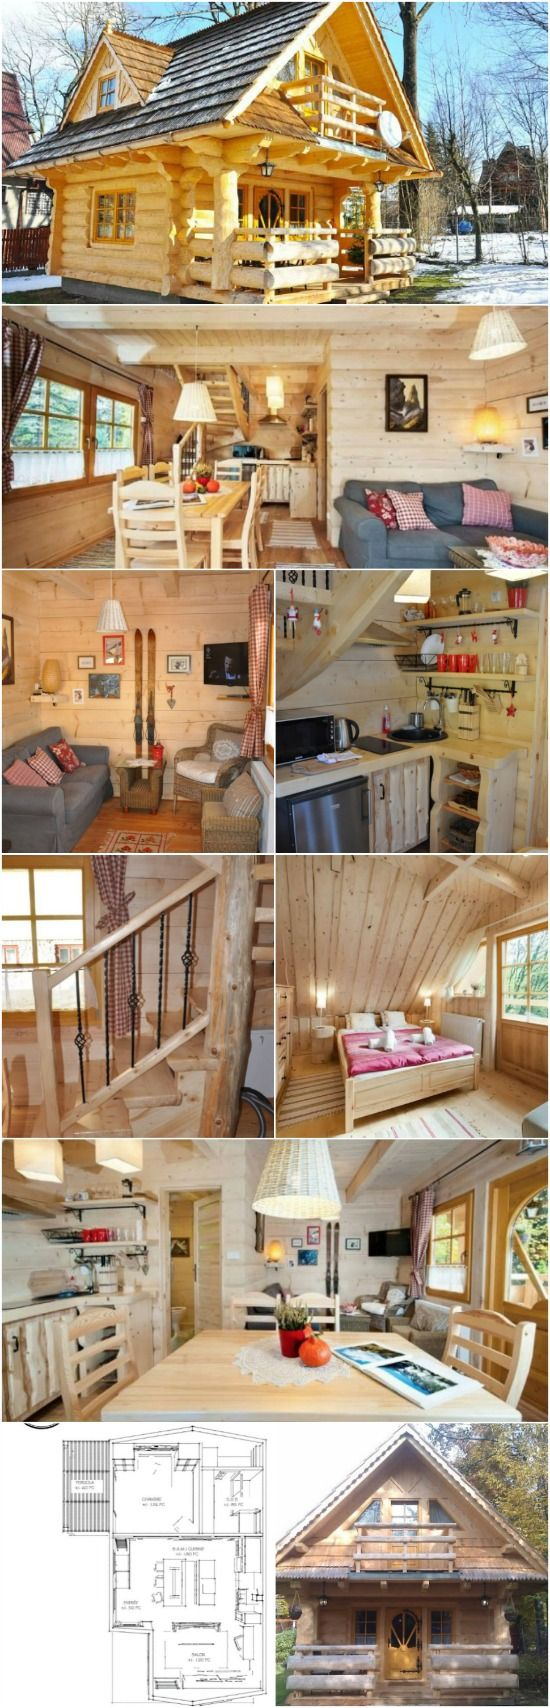 "Lovely 296Sf Handmade Tiny Log House by The Little Log House Company - The Little Log House Company designs and builds the most beautiful homes with details inspired by fairytales. Their models are nothing short of breathtaking and whimsical and feature handmade details and gorgeous natural wood logs. The ""Stunning Gate Lodge"" below is one of their tiny houses and at only 296 square feet it lives up to its name!"